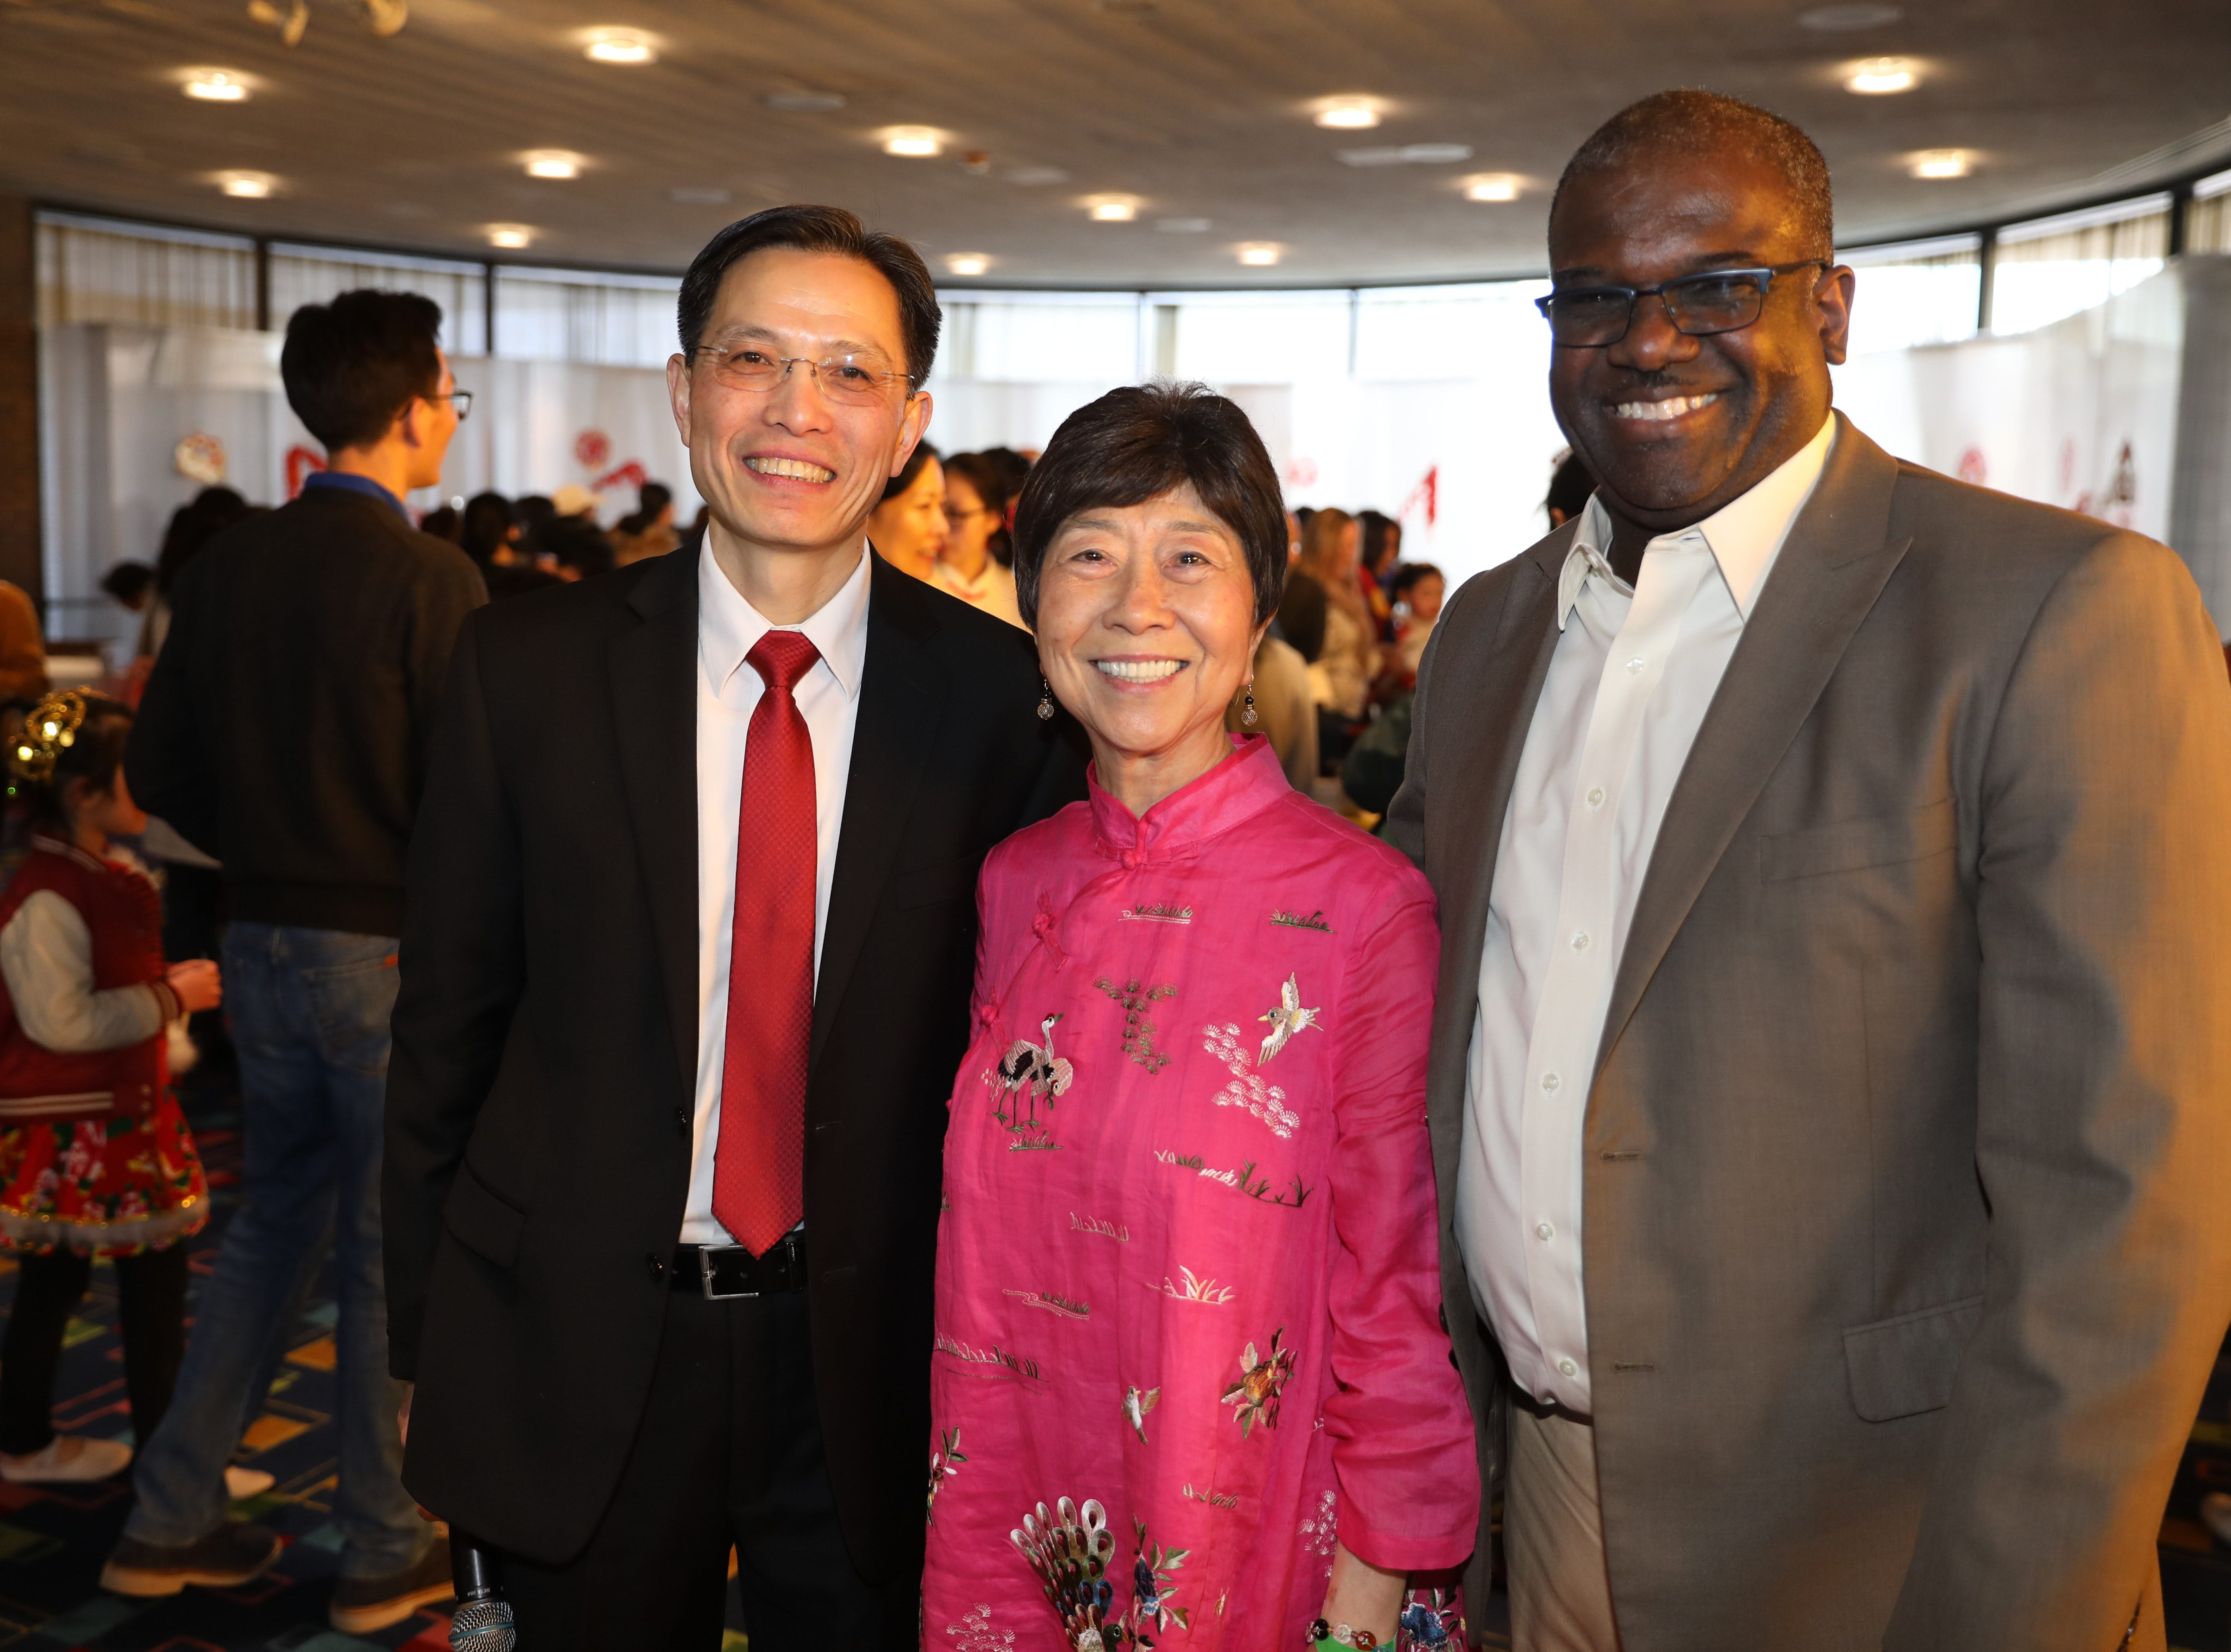 Kevin Ding, the president of WACA (Westchester Association of Chinese Americans), Rose Tan Kaung, the Vice President of Public Relations and Ken Jenkins, the Westchester County Deputy County Executive, are pictured during the 30th Chinese New Year Festival, the Year of the Pig, sponsored by WACA, at The Performing Arts Center at Purchase College SUNY, Feb. 9, 2019.